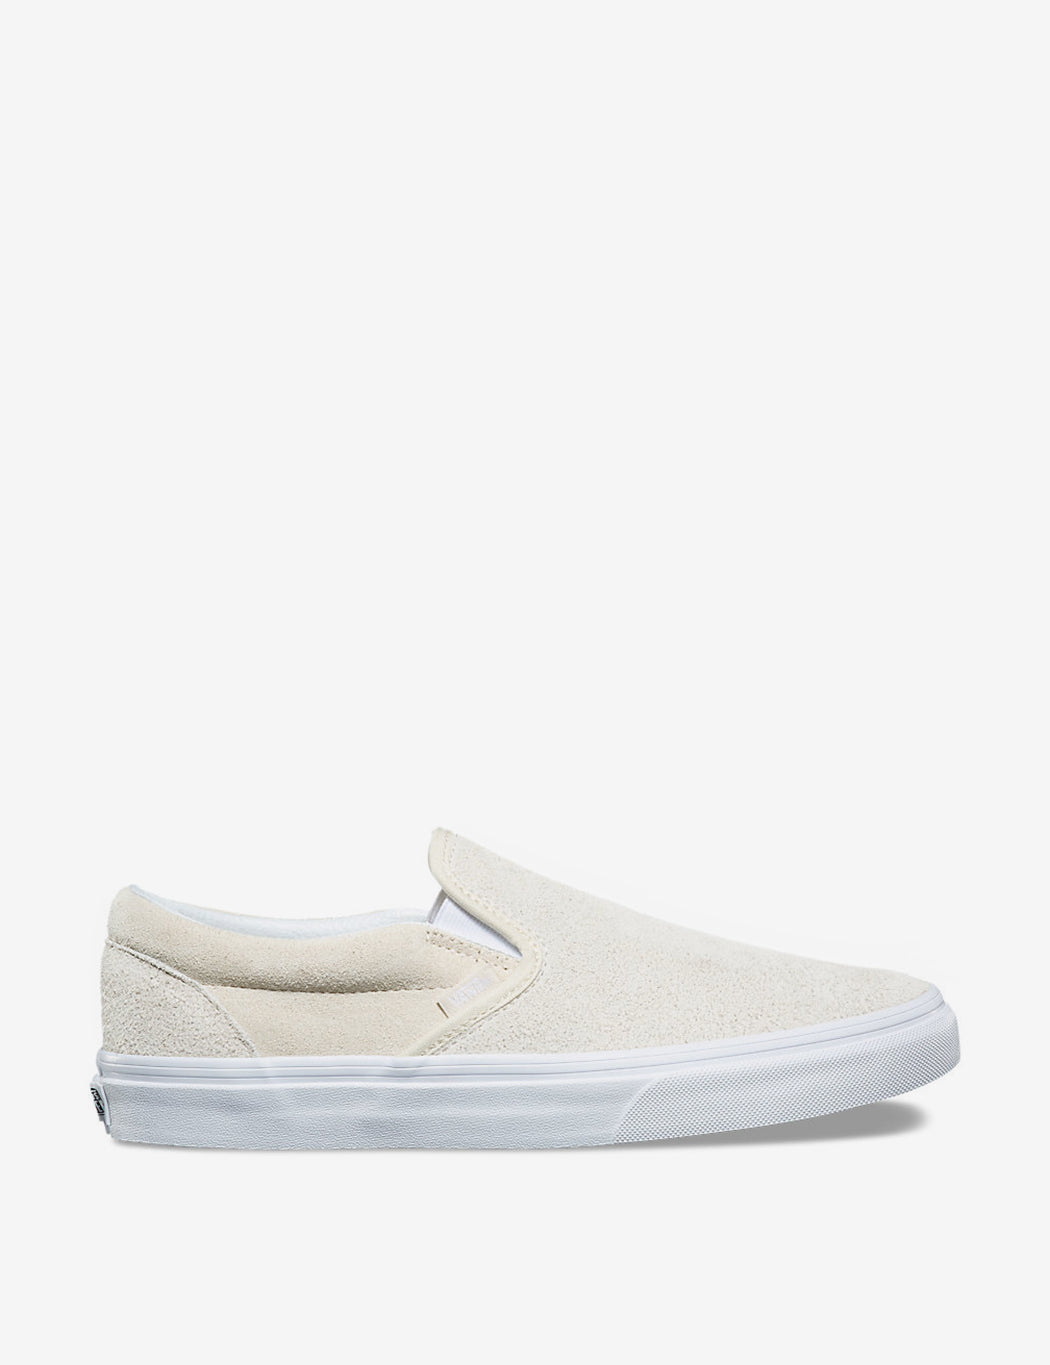 78e5e11d0a39b6 Vans Classic Slip-On (Hairy Suede) - Turtledove Off White